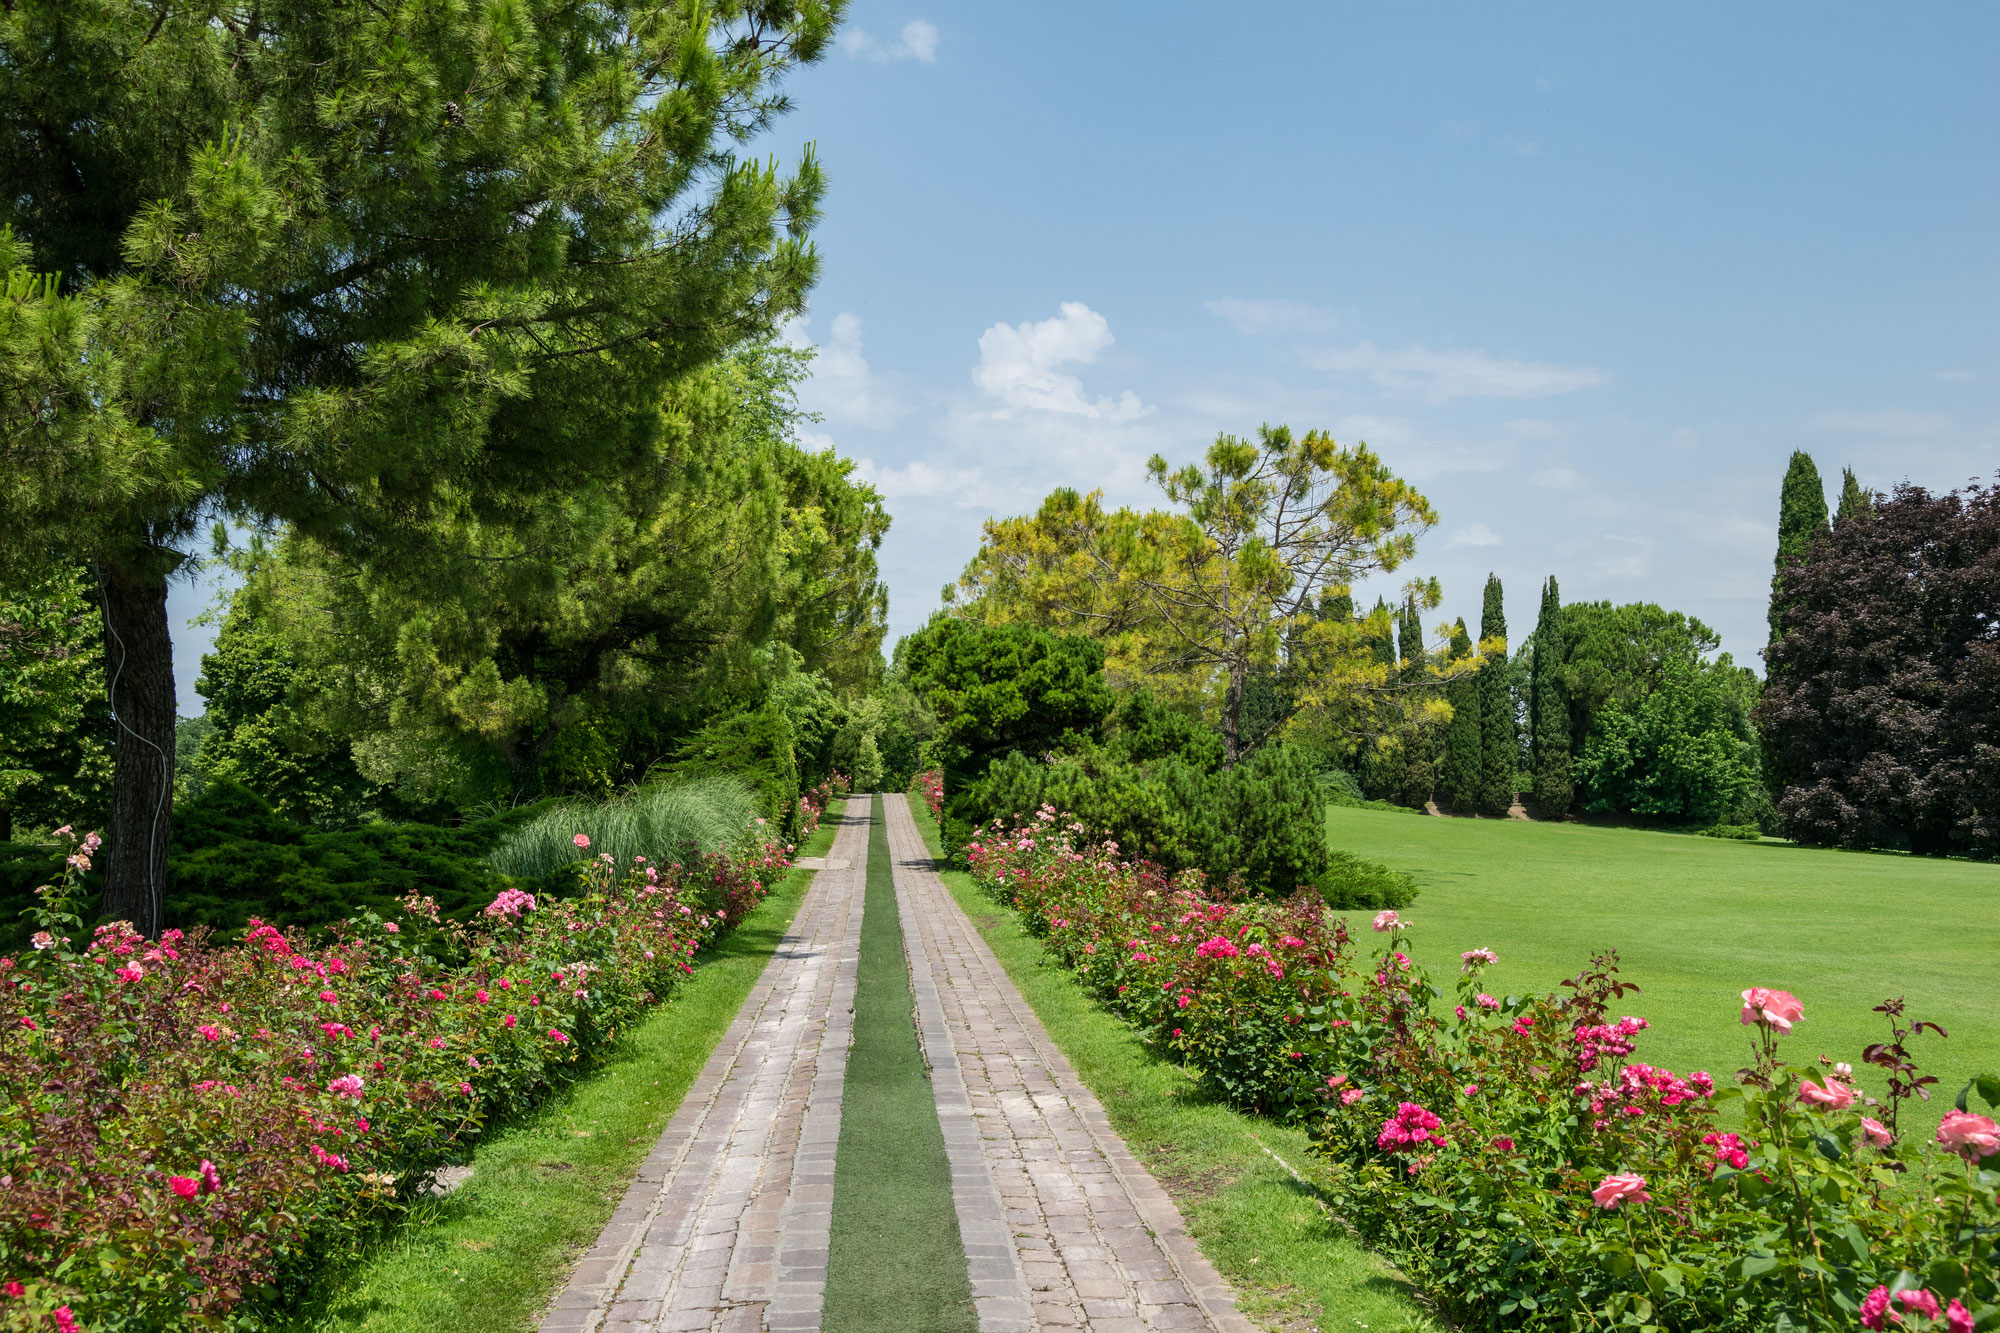 Parco Giardino Sigurtà 2021: everything you need to know about the second most beautiful garden in Europe.